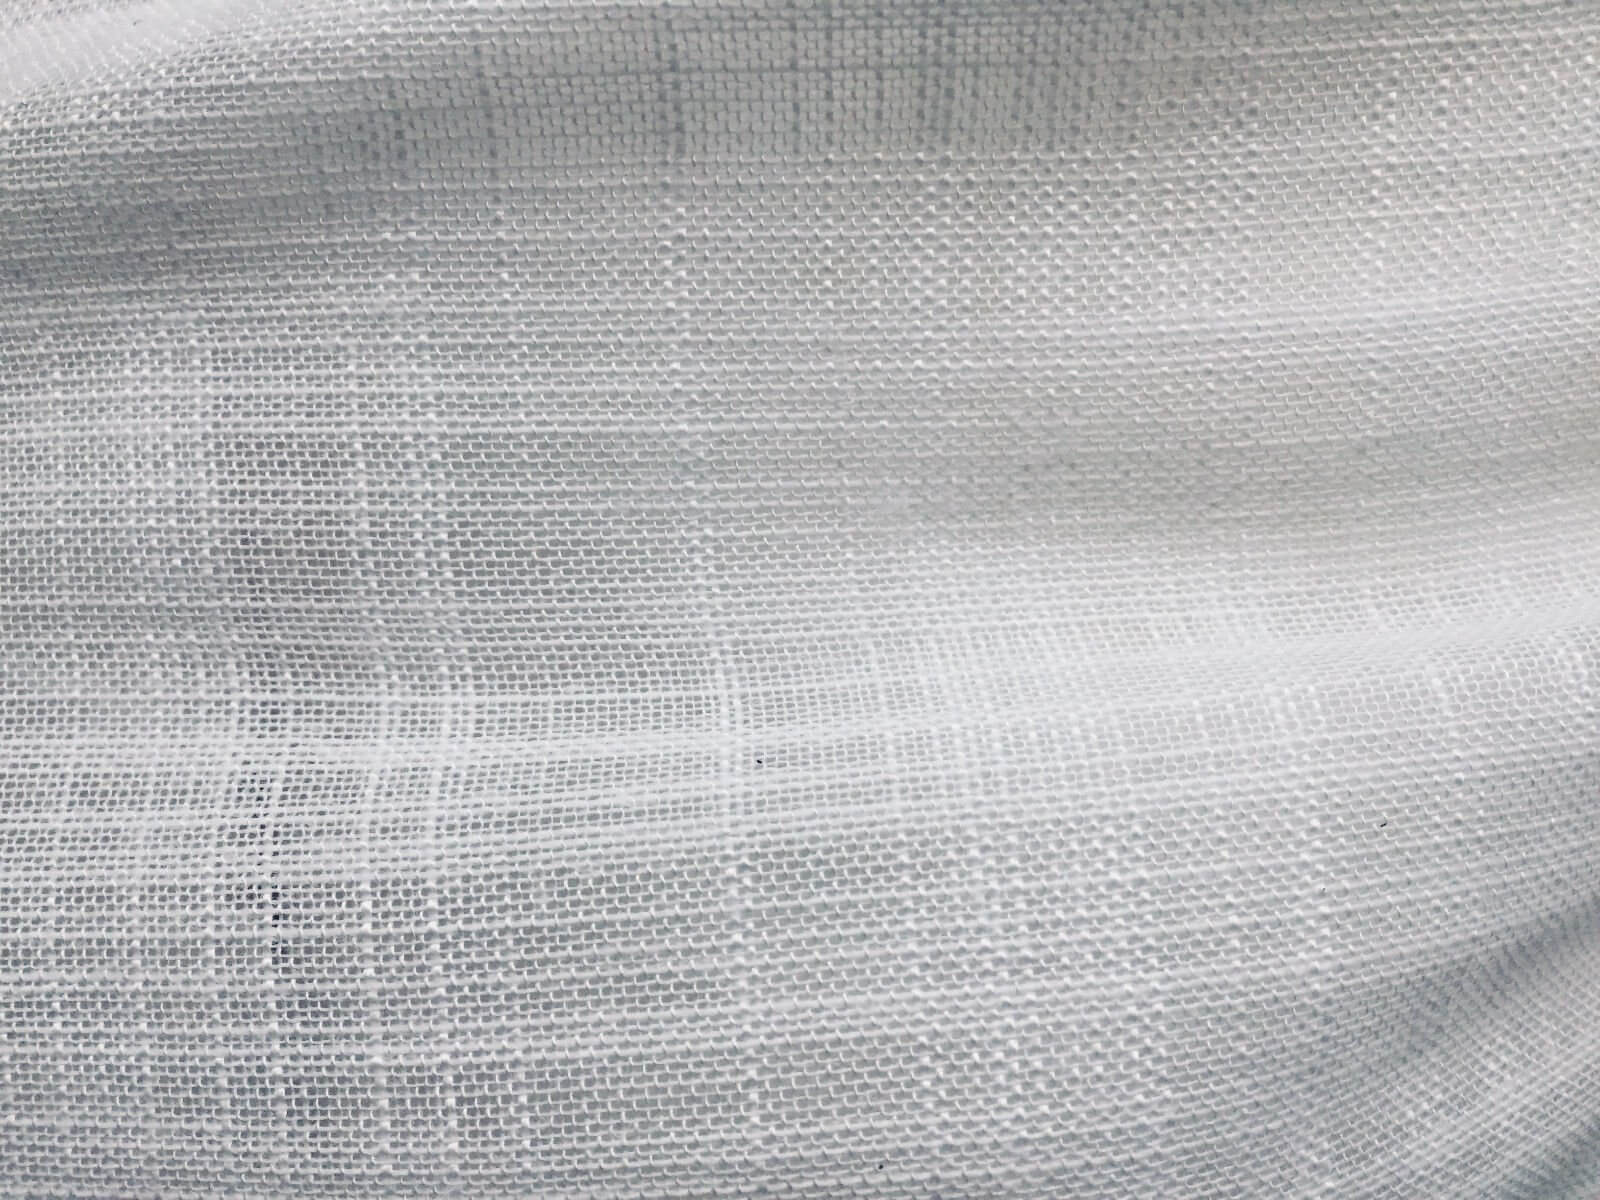 White Inbetween Voile Tulle Organza Fabric Sheer Curtain Net